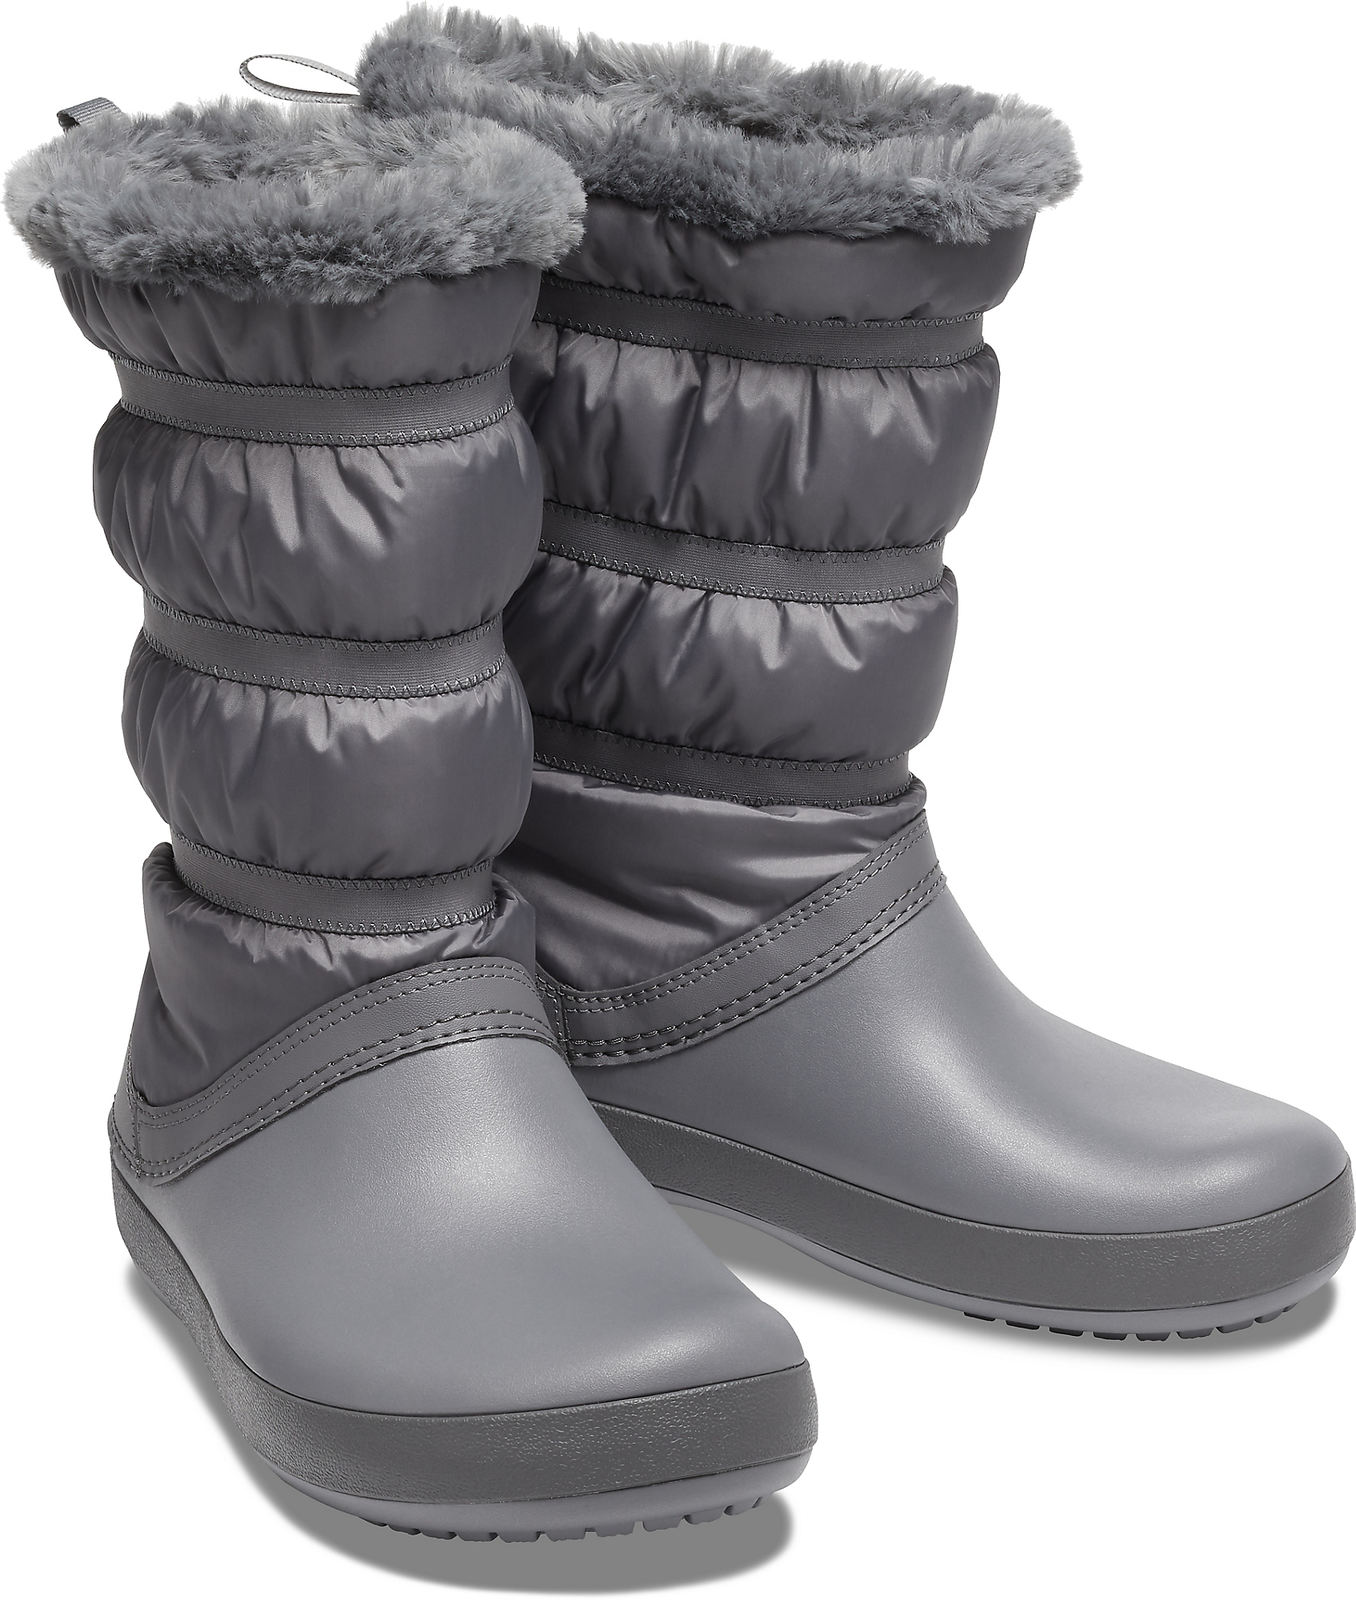 Crocs sivé snehule Crocband Winter Boot Charcoal